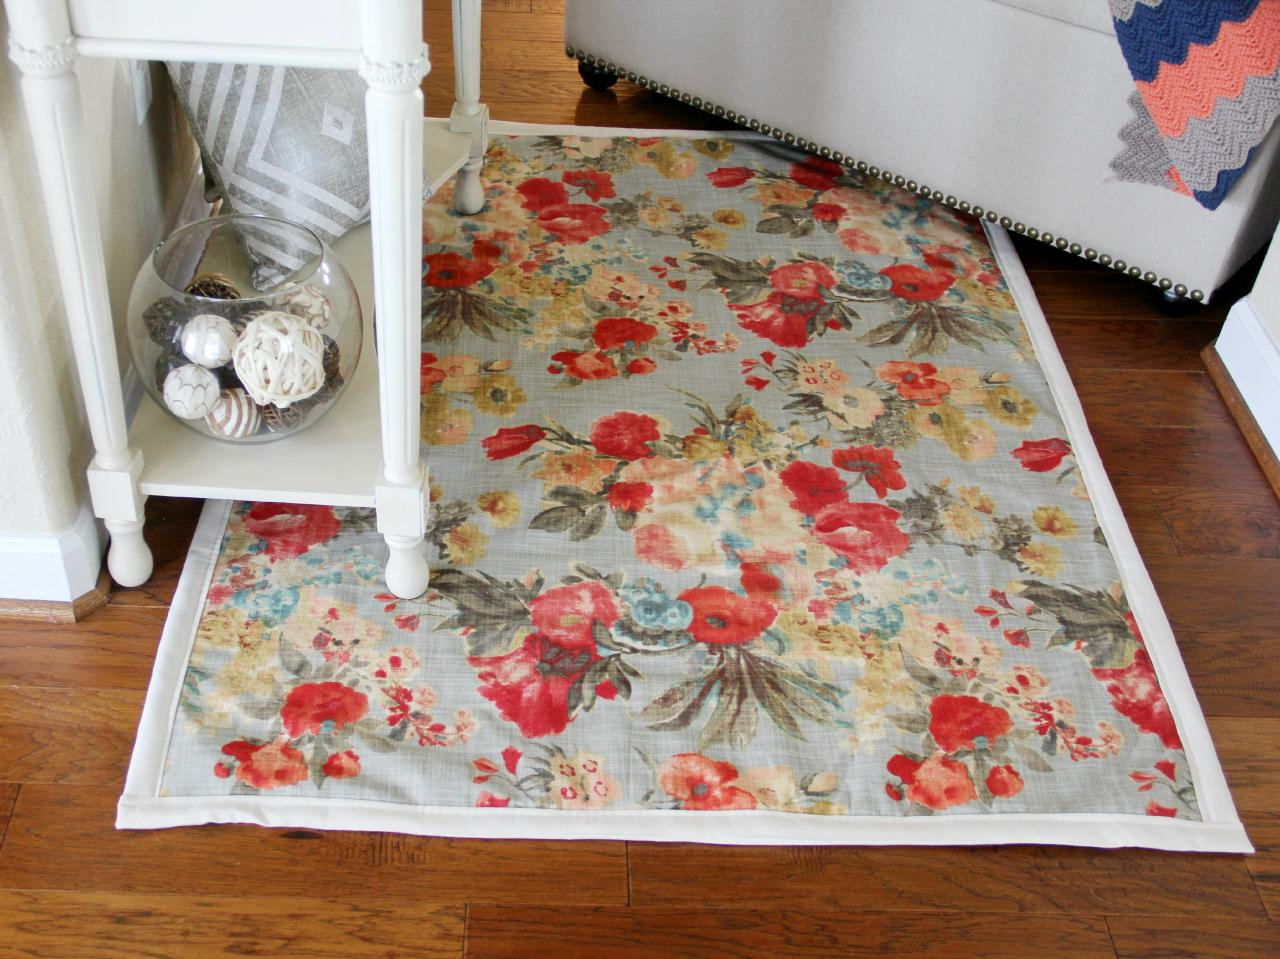 Design Diy Rug how to make a rug from upholstery fabric tos diy step 8